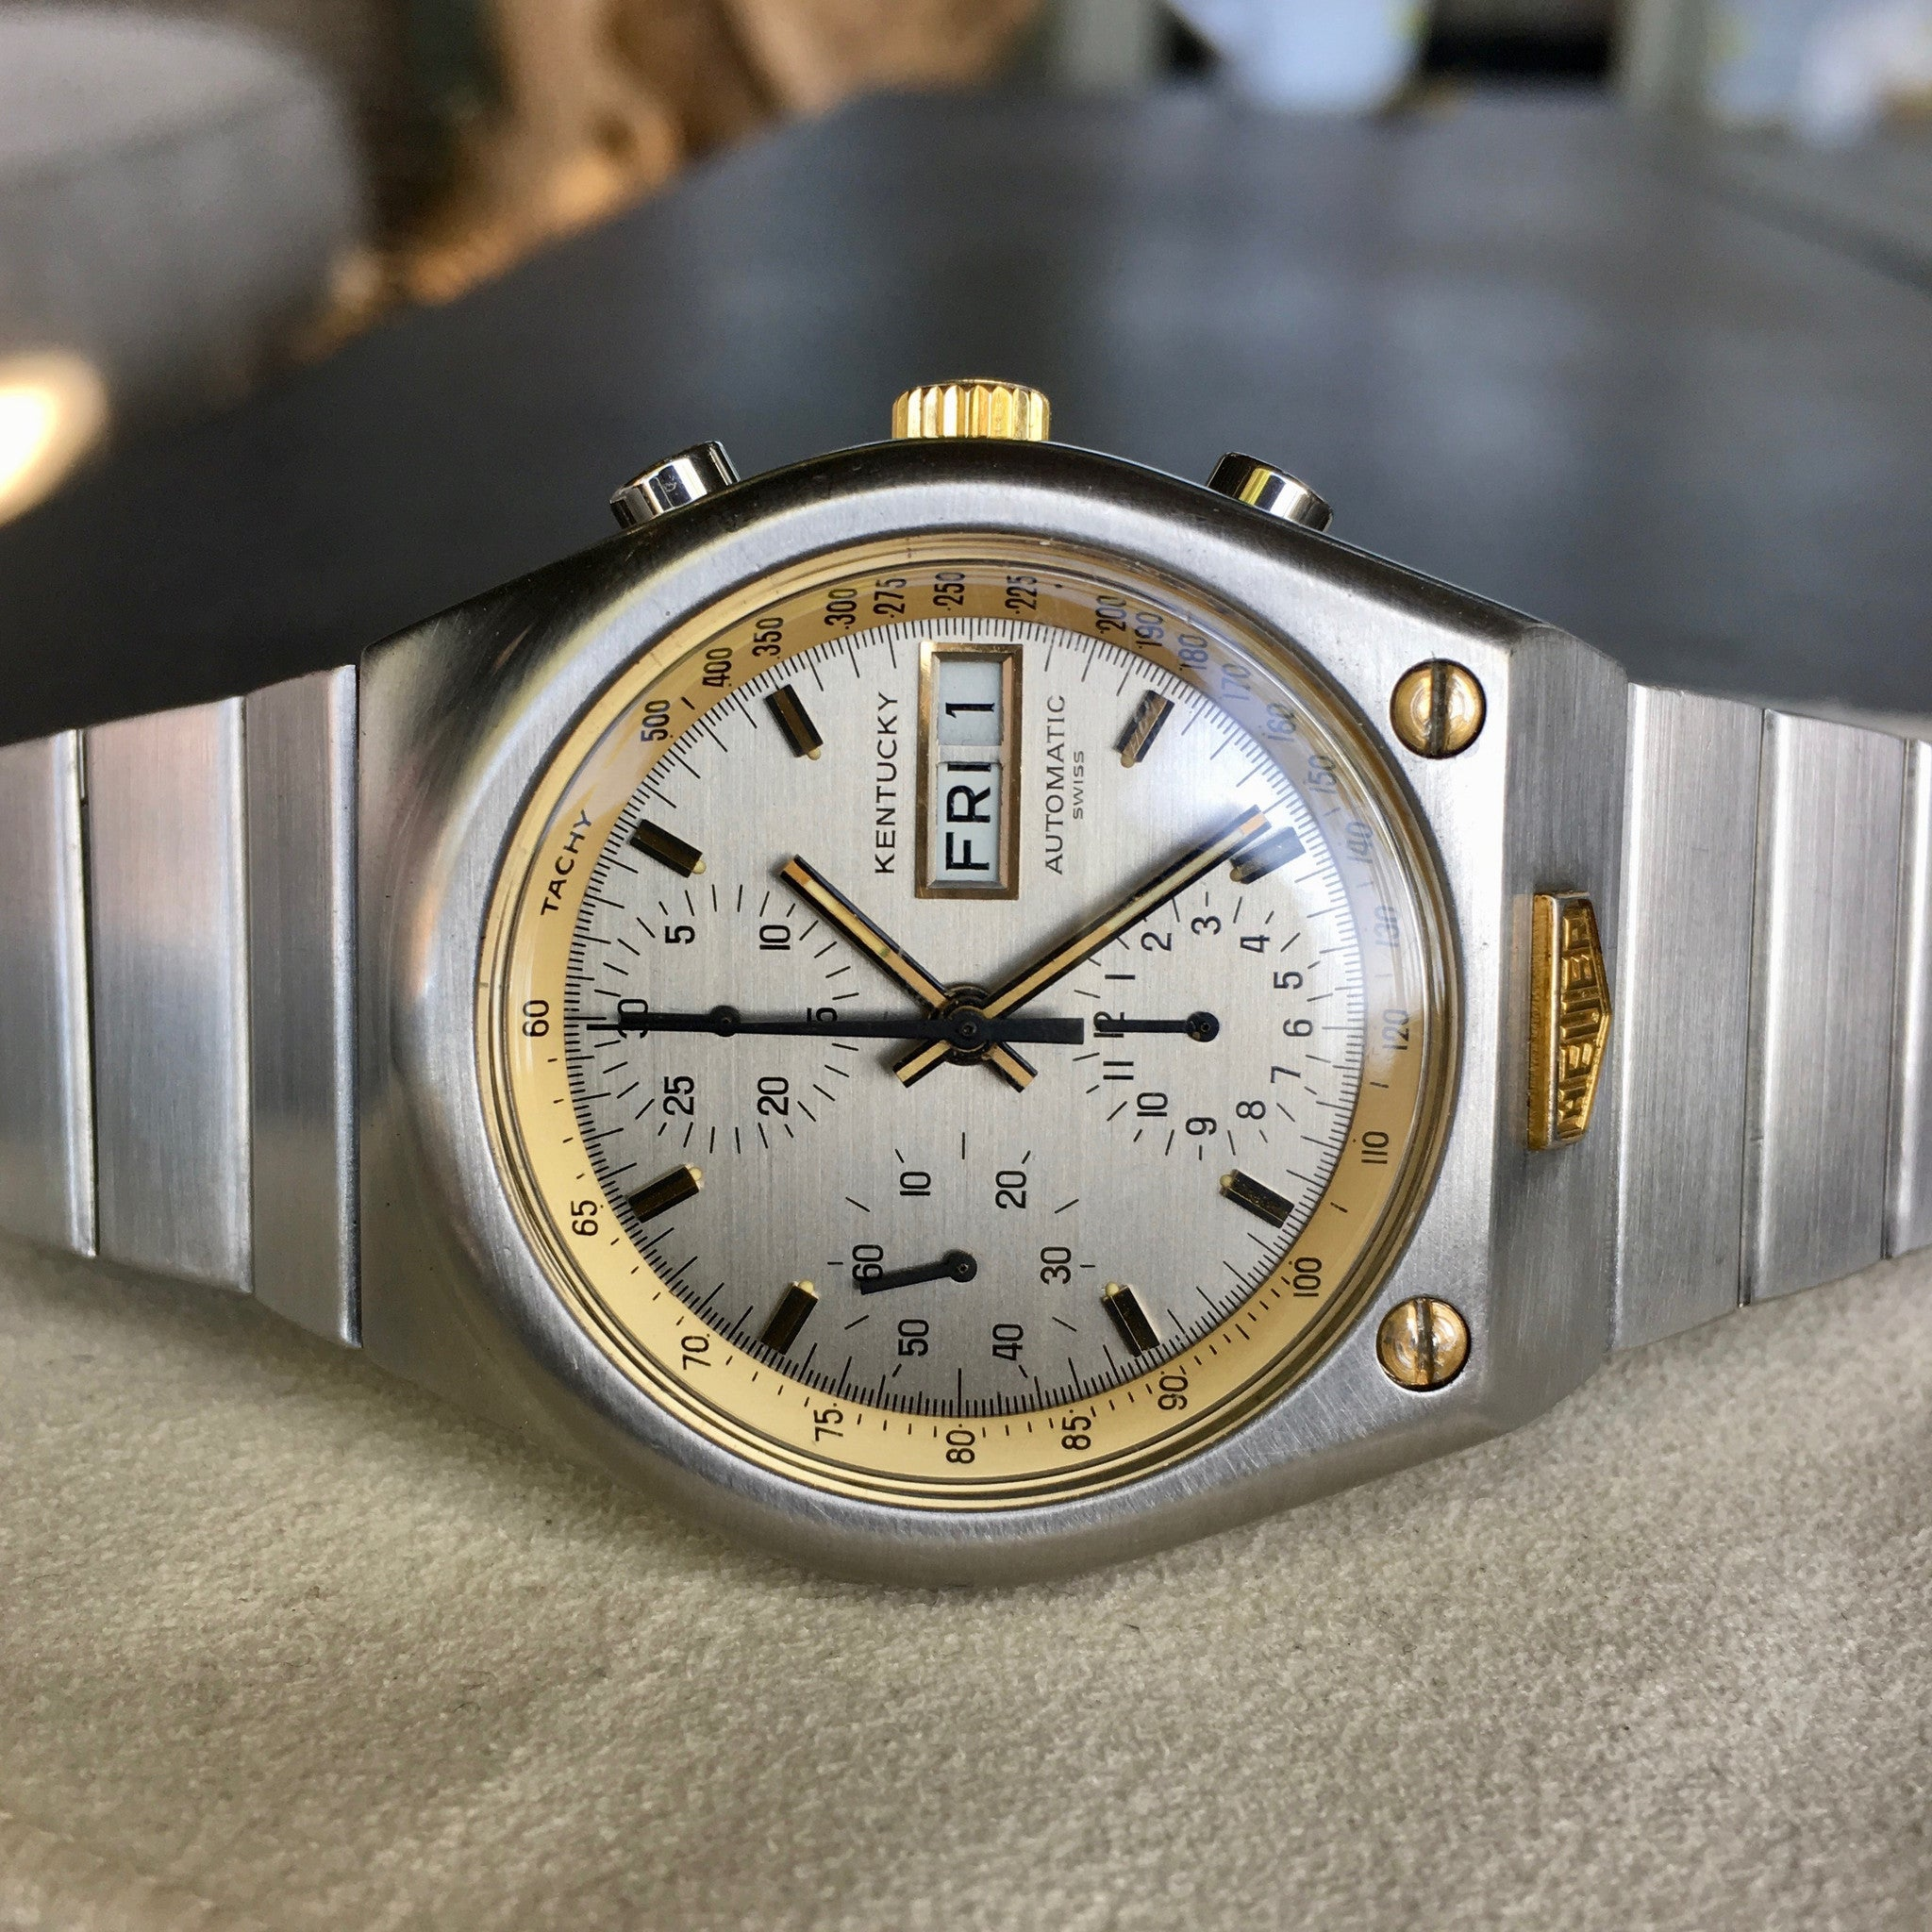 Vintage Heuer Kentucky 750.705 Steel Gold Automatic Valjoux 7750 Chronograph Watch - Hashtag Watch Company